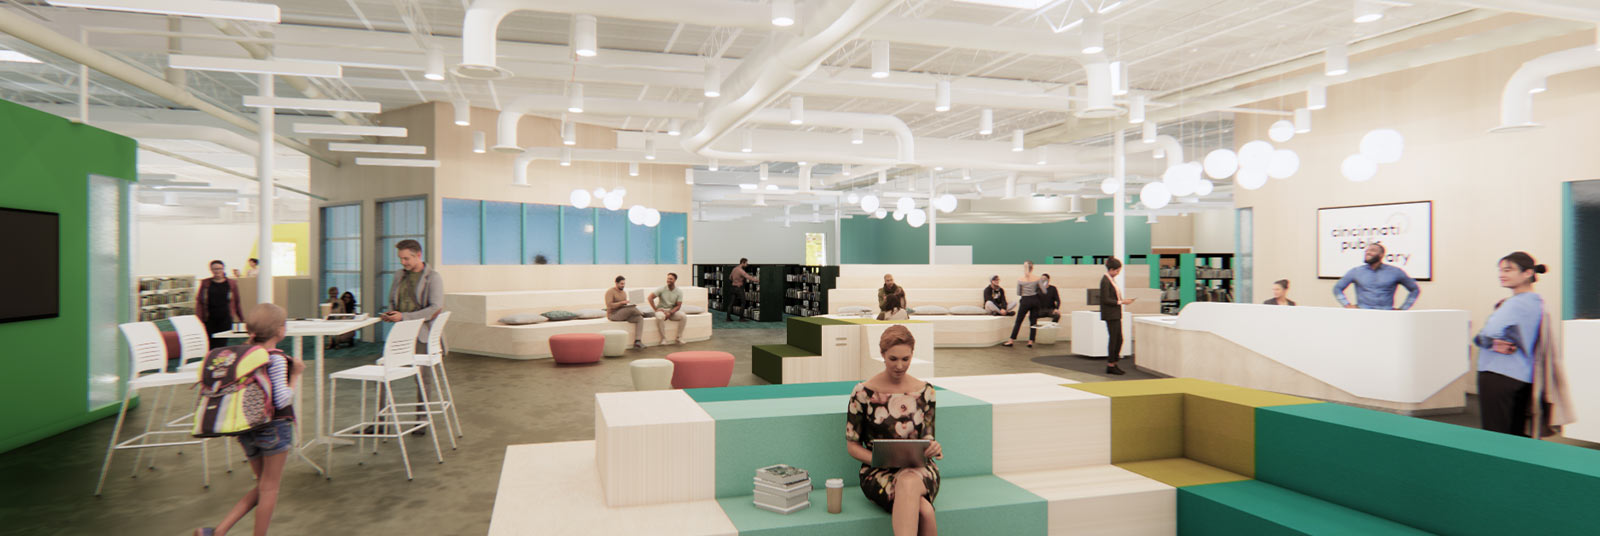 Rendering of the marketplace inside the new Deer Park Library.